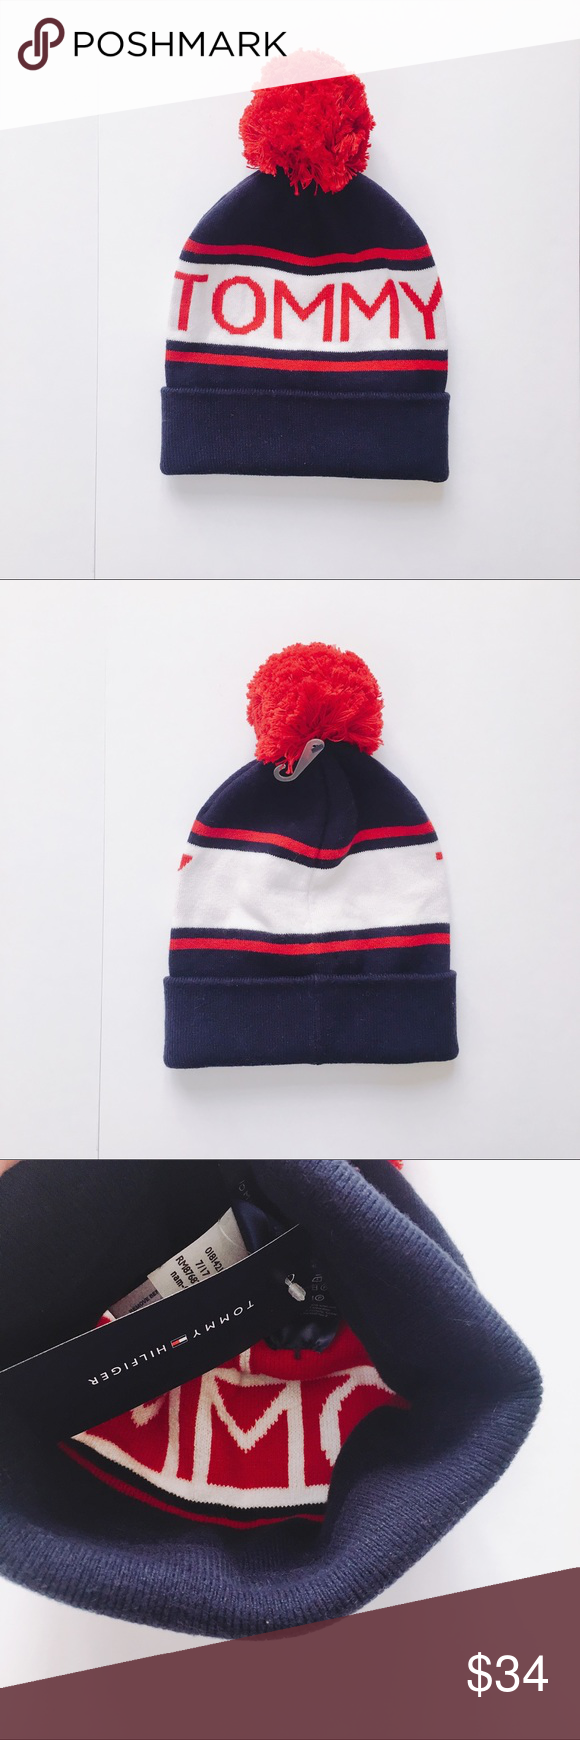 595131d39 Tommy Hilfiger logo pom pom knitted beanie hat Brand new with tag ...